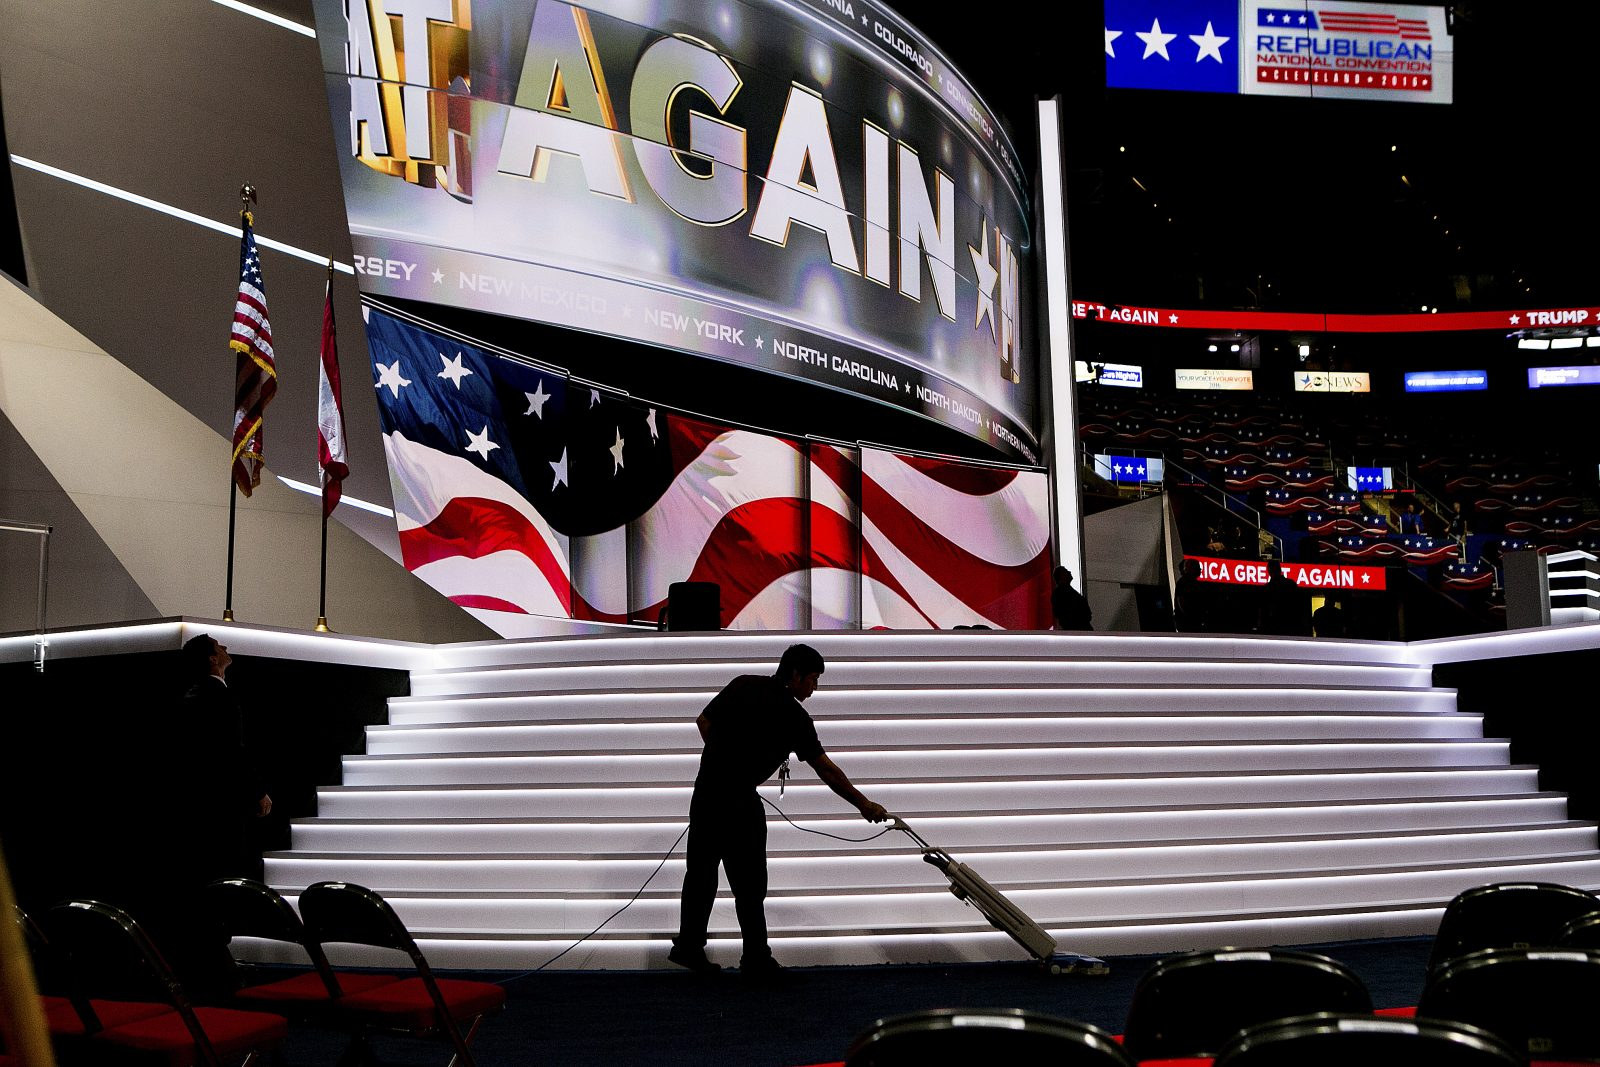 A worker vacuums the floor in the Quicken Loans Arena on Day Two of the Republican National Convention. (Sam Hodgson/New York Times)